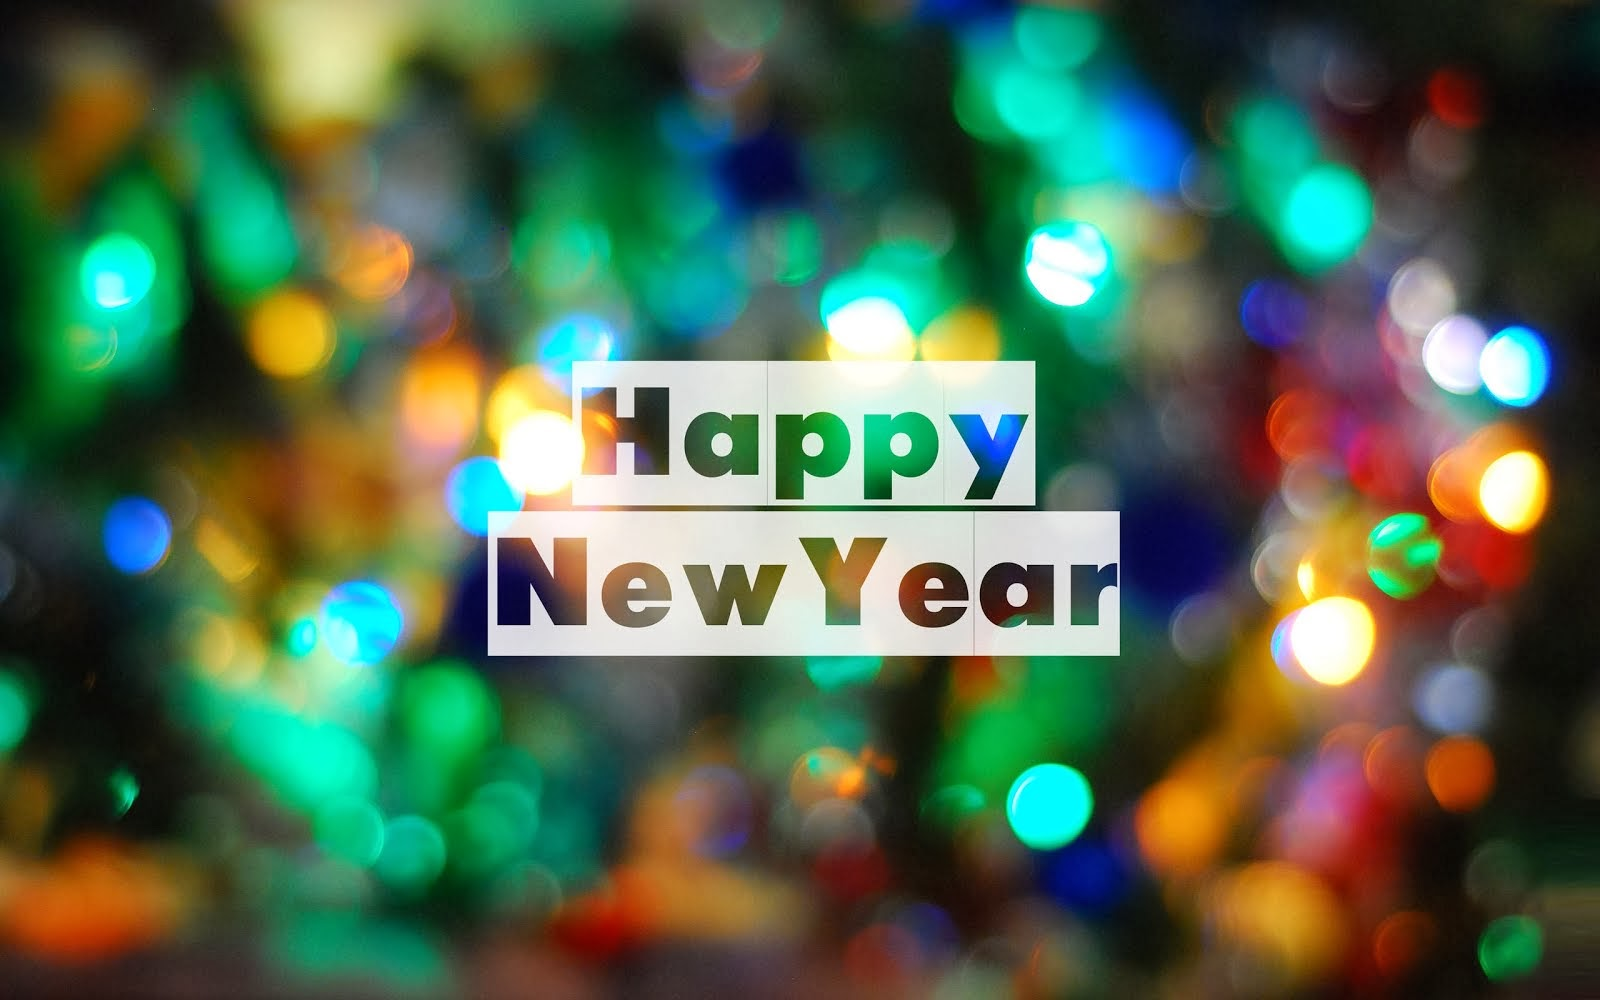 happy new year 2014 wallpaper hd free